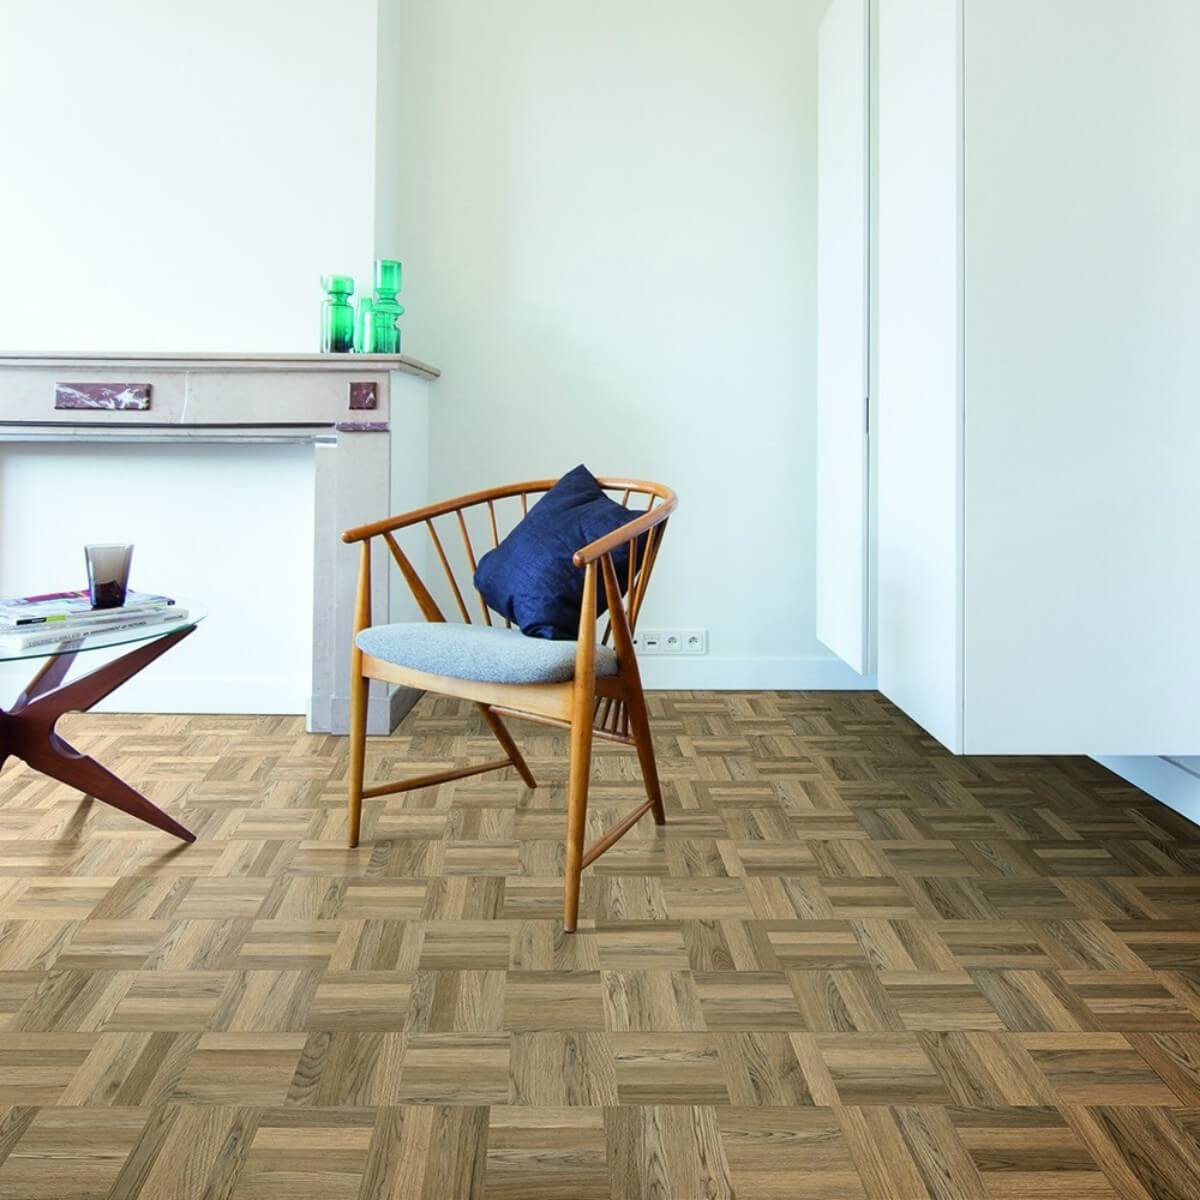 Buying Cheap Wood Flooring Doesn't Have to Mean Sacrificing on Quality